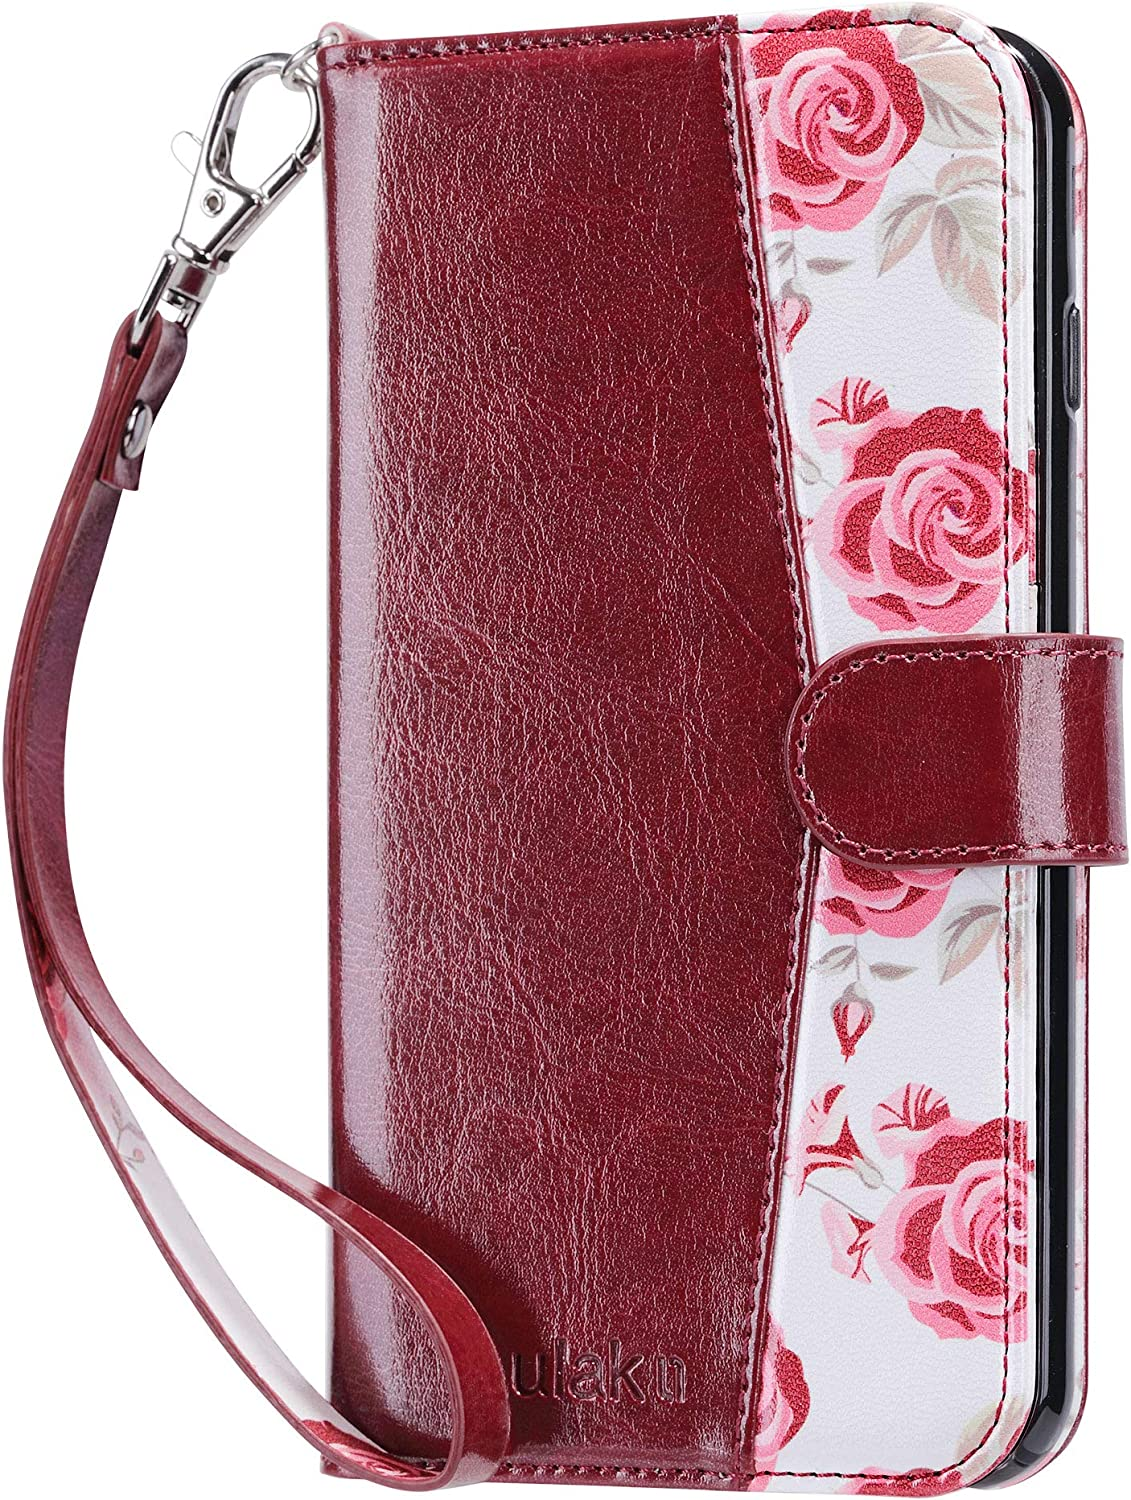 ULAK iPhone 8 Plus Case, iPhone 7 Plus Flip Wallet Case, PU Leather Wallet Case with Card Holder Kickstand Hand Strap Shockproof Protective Cover for Apple iPhone 7 Plus/8 Plus 5.5 Inch, Burgundy